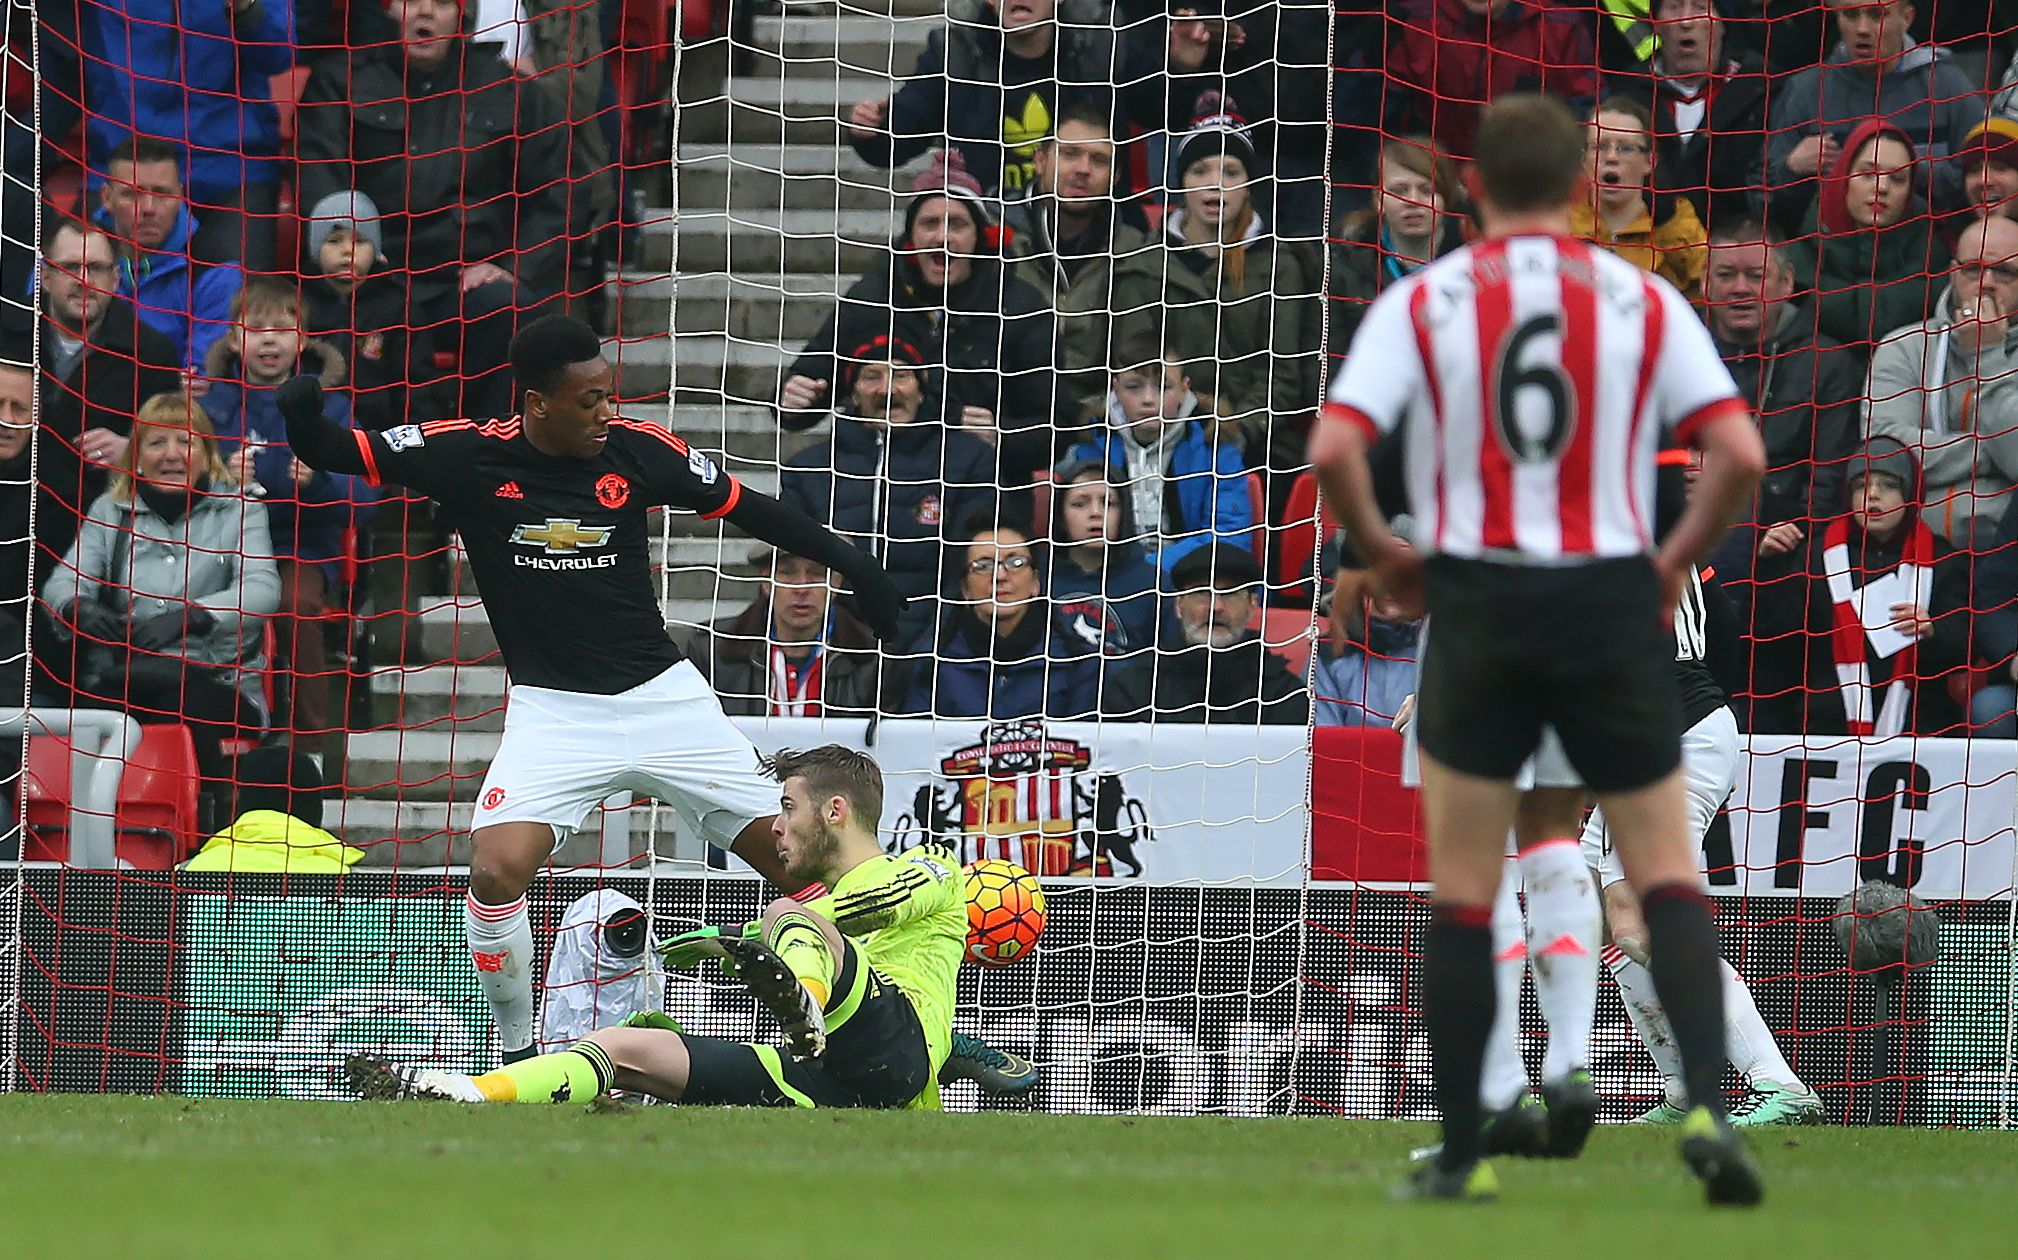 Manchester United's David De Gea scores the own goal that handed Sunderland victory